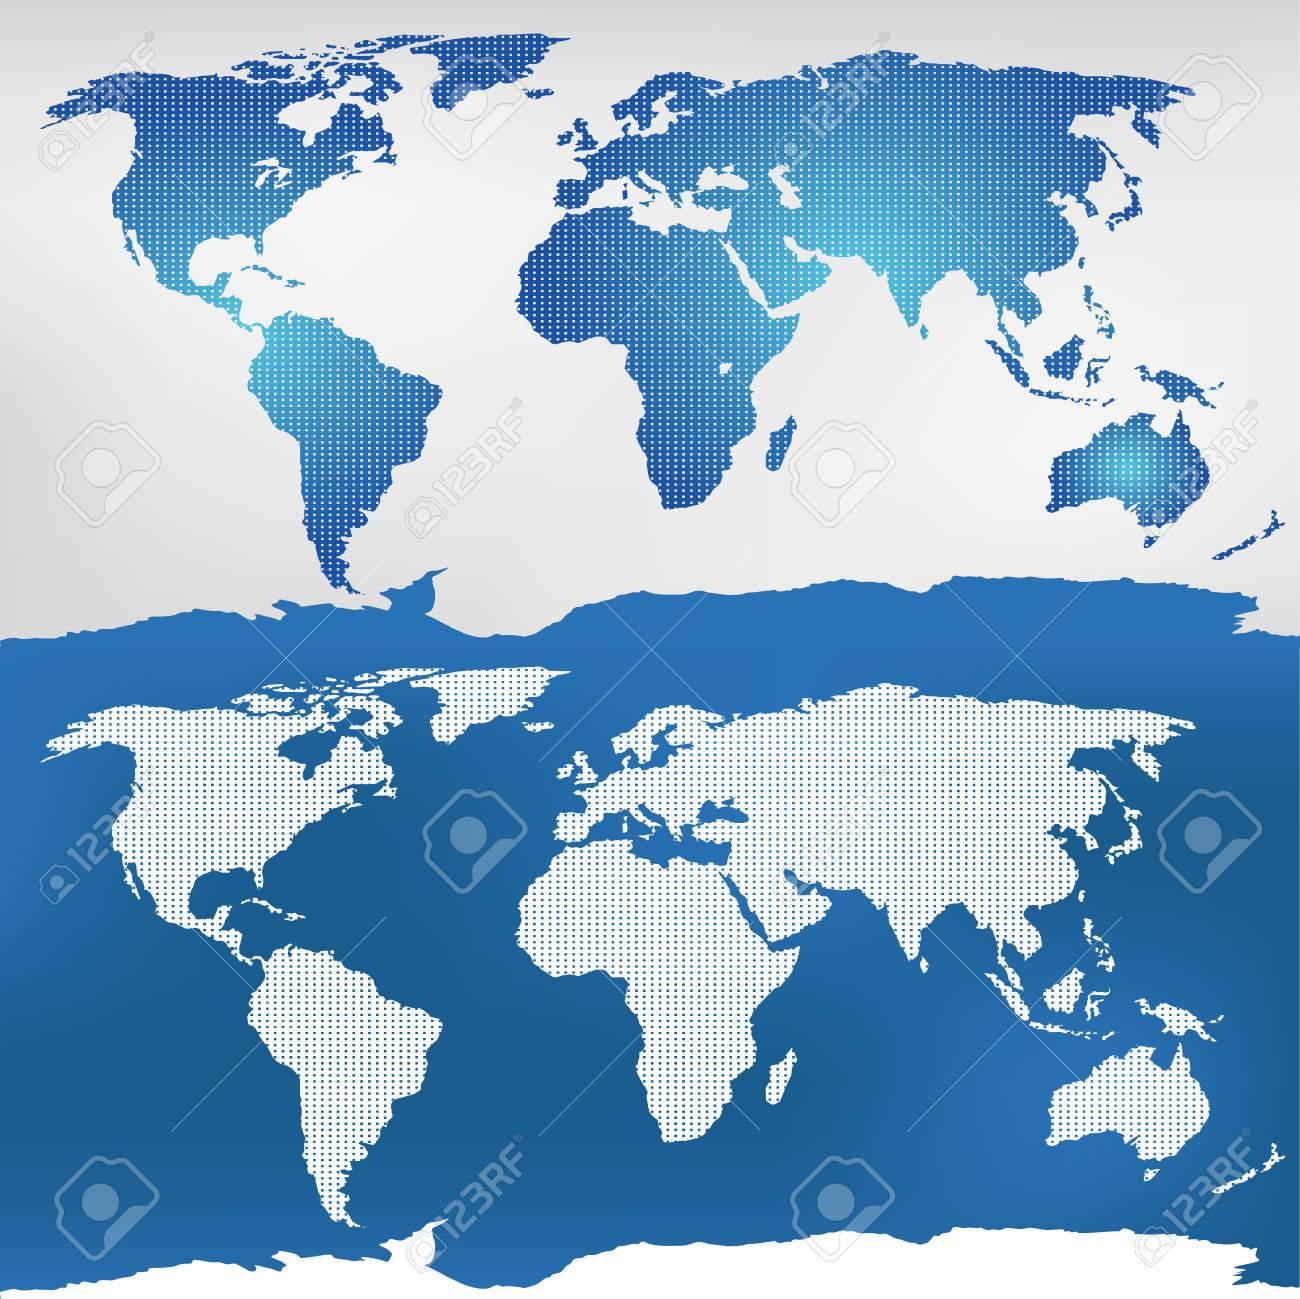 Illustration of the world map mercator projection royalty free illustration of the world map mercator projection stock vector 55023781 gumiabroncs Choice Image